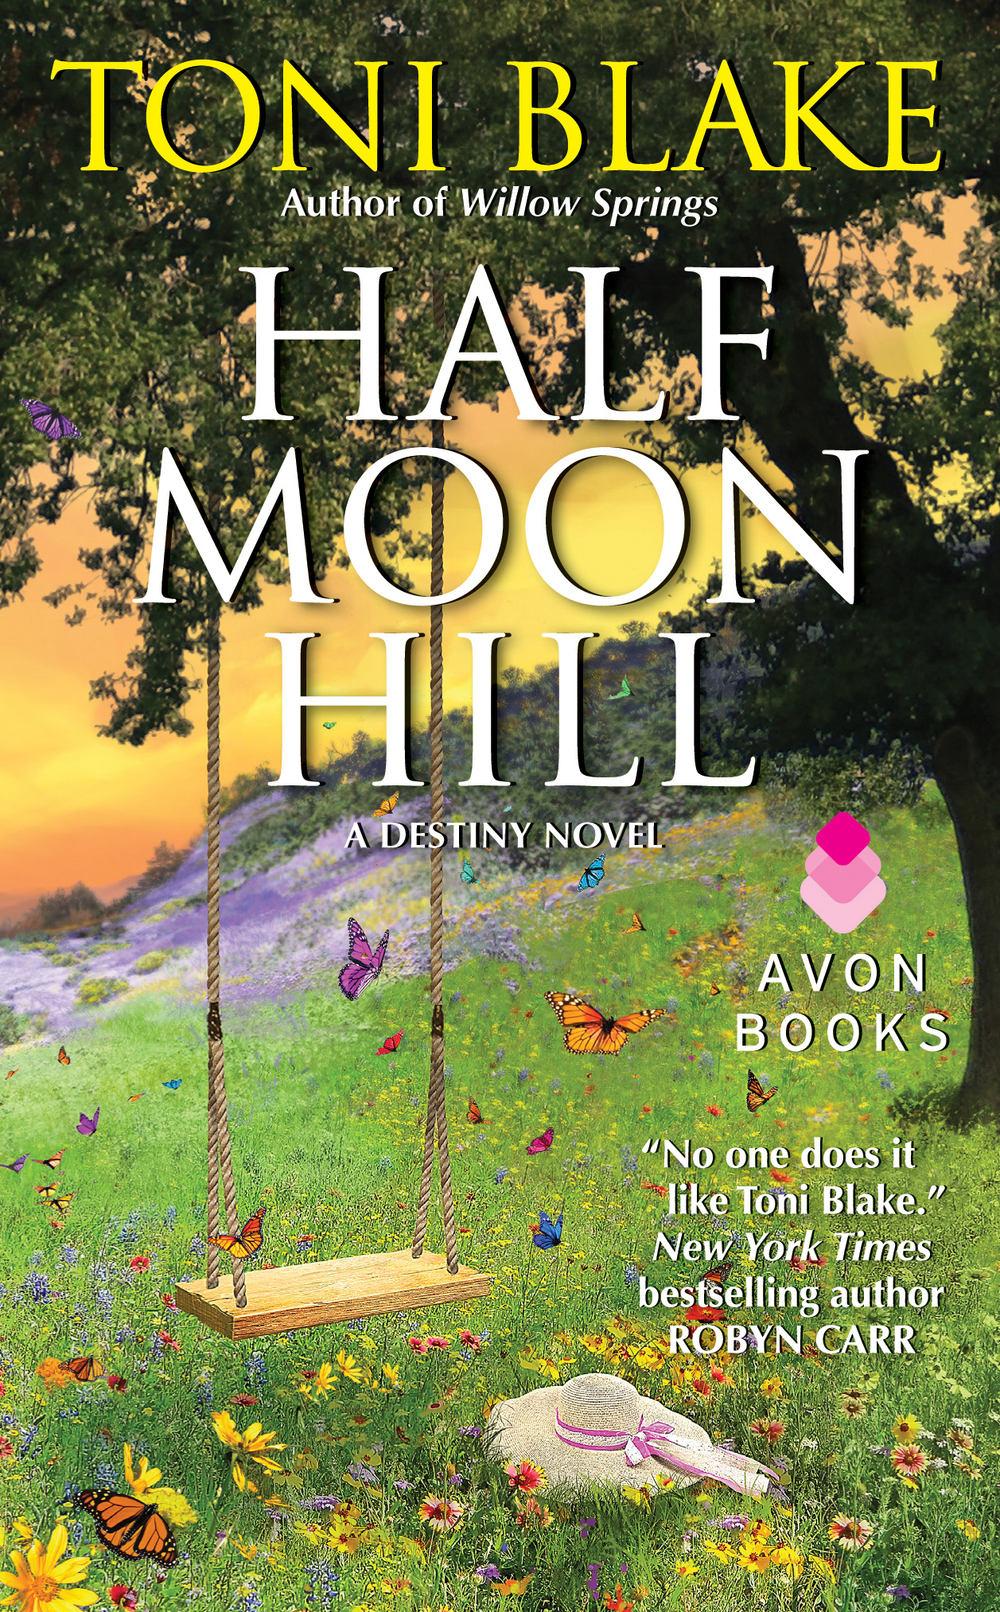 Half Moon Hill releases April 29, 2013 and is available for pre-order at Amazon and Barnes & Noble.